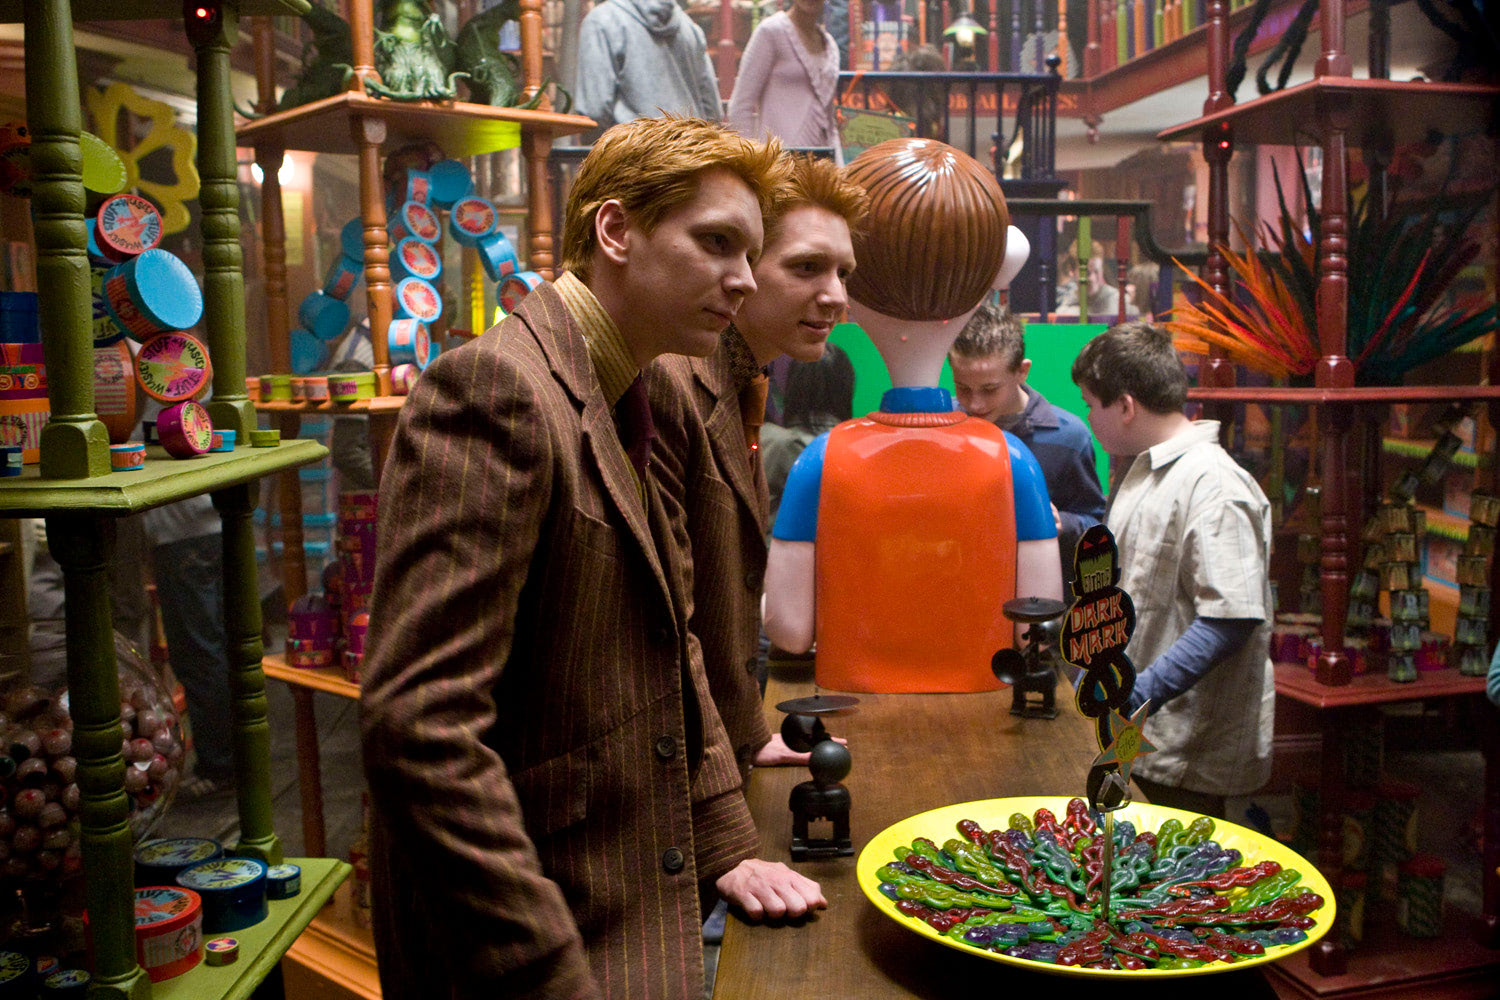 Fred and George at Weasleys' Wizard Wheezes